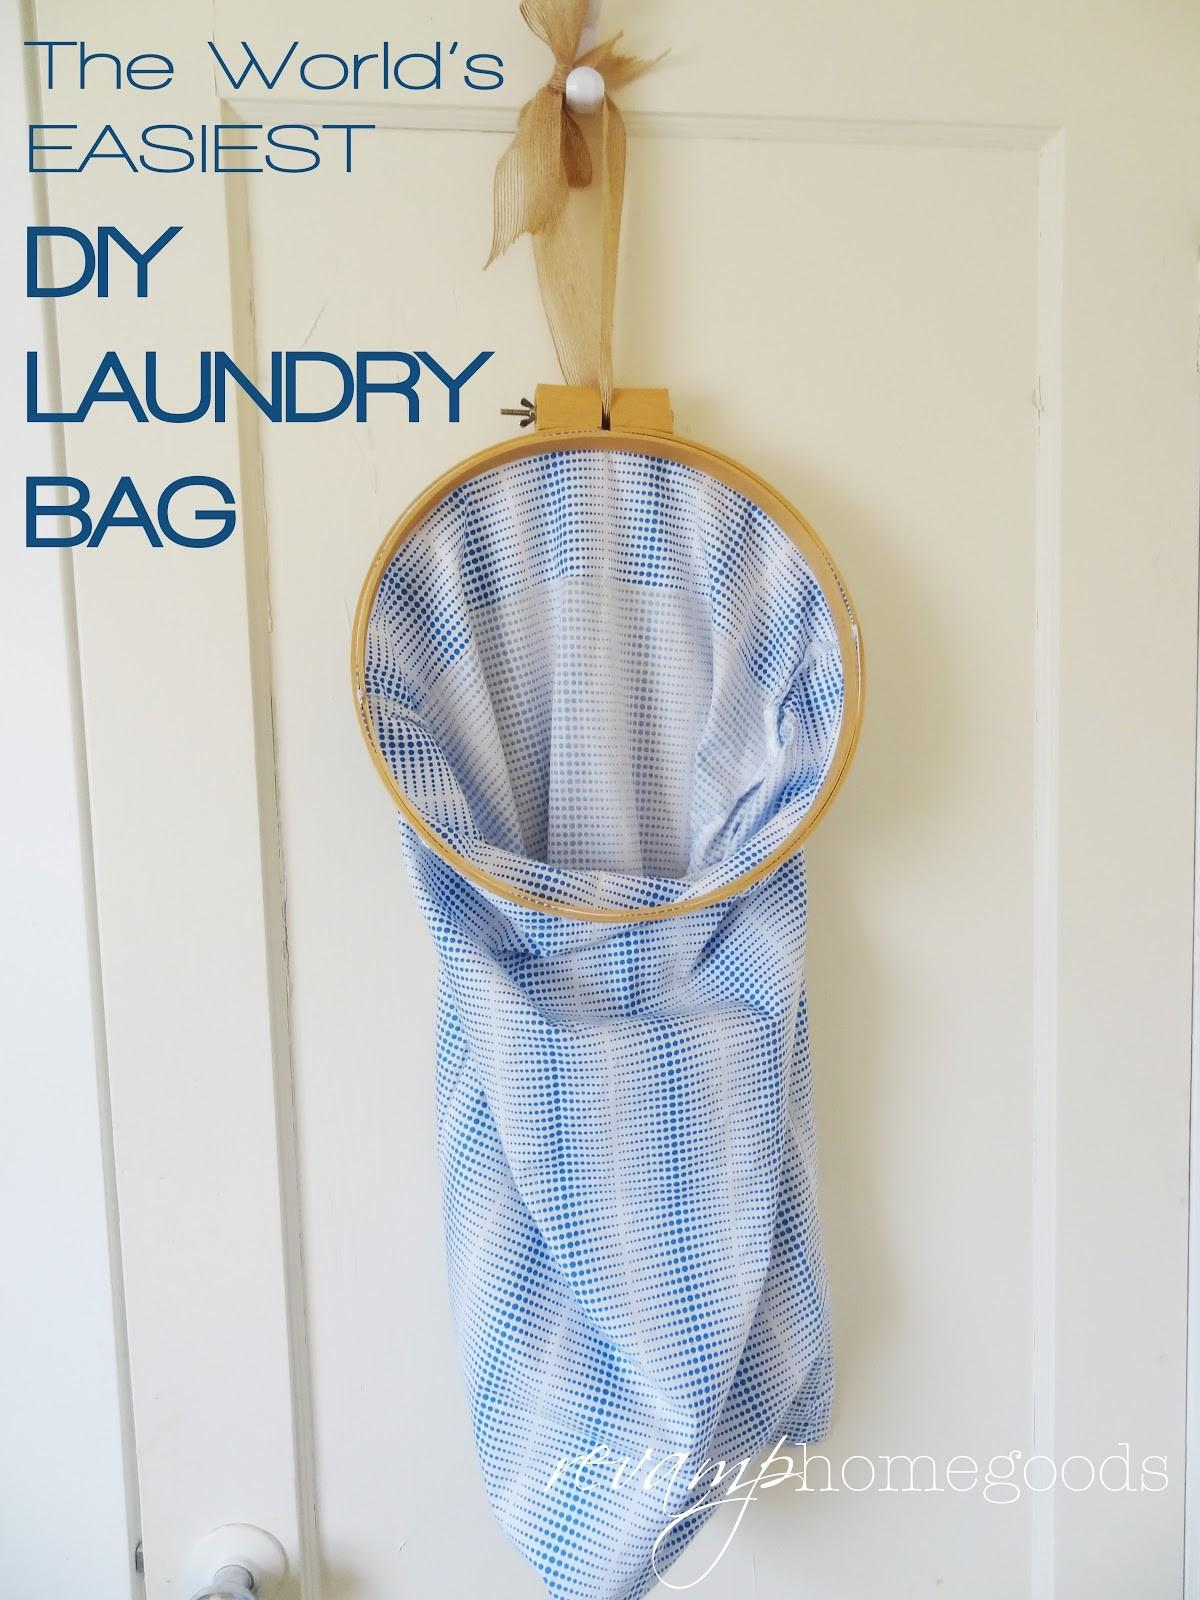 World Easiest Diy Laundry Bag Revamp Homegoods